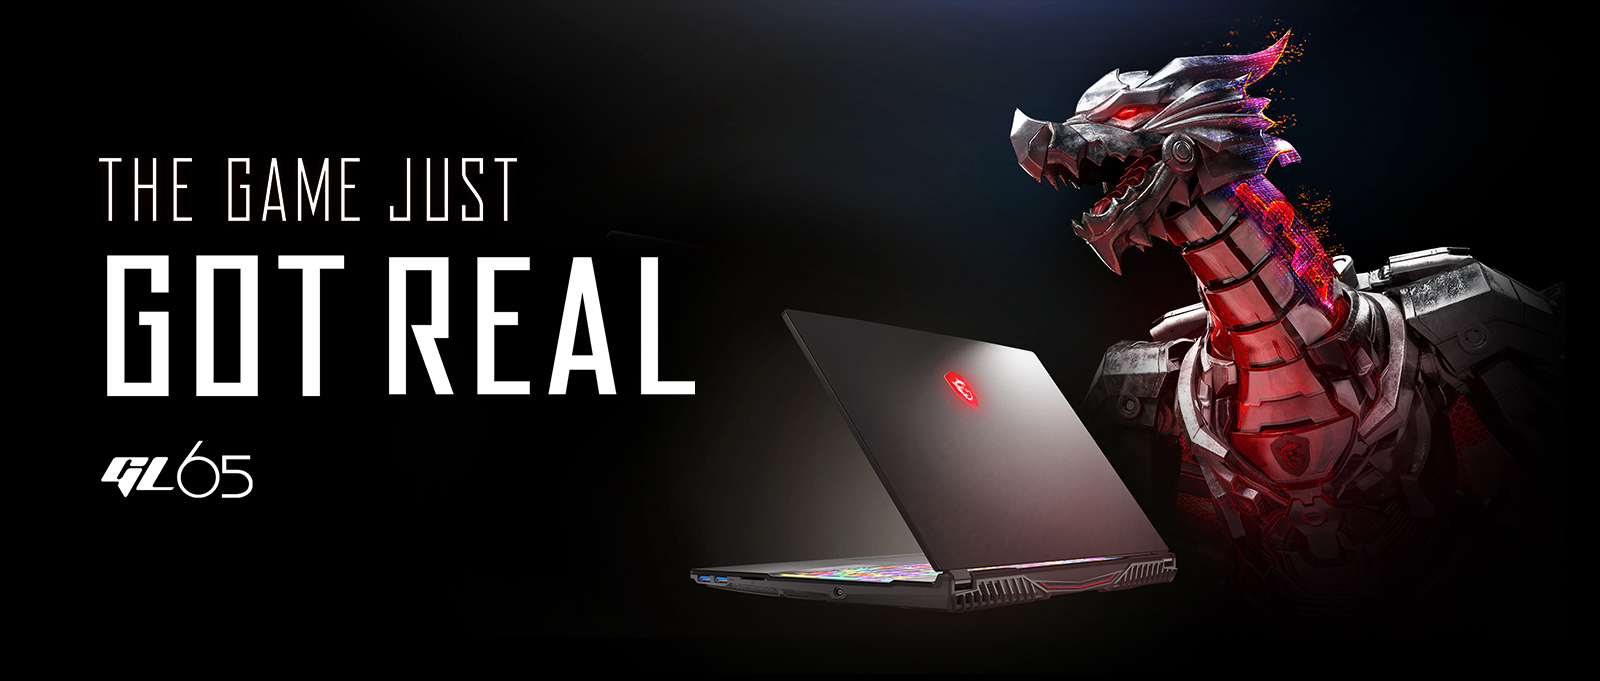 MSI GL65 Next to An Iron Dragon. The Text on Image Reads: THE GAME JUST GOT REAL - GL65